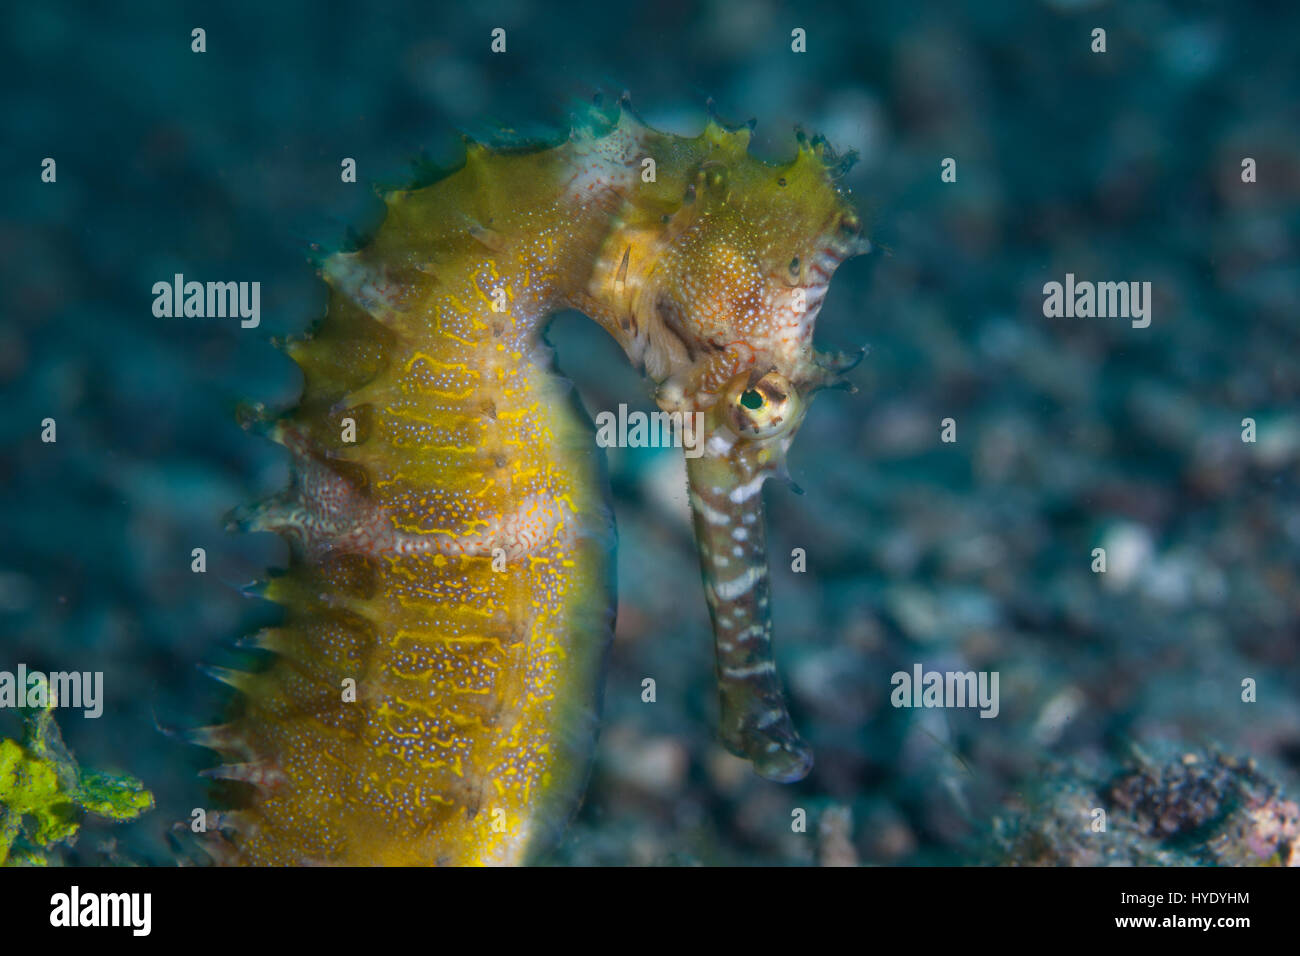 A well-camouflaged Thorny seahorse is found on a sandy slope in Lembeh Strait, Indonesia. - Stock Image